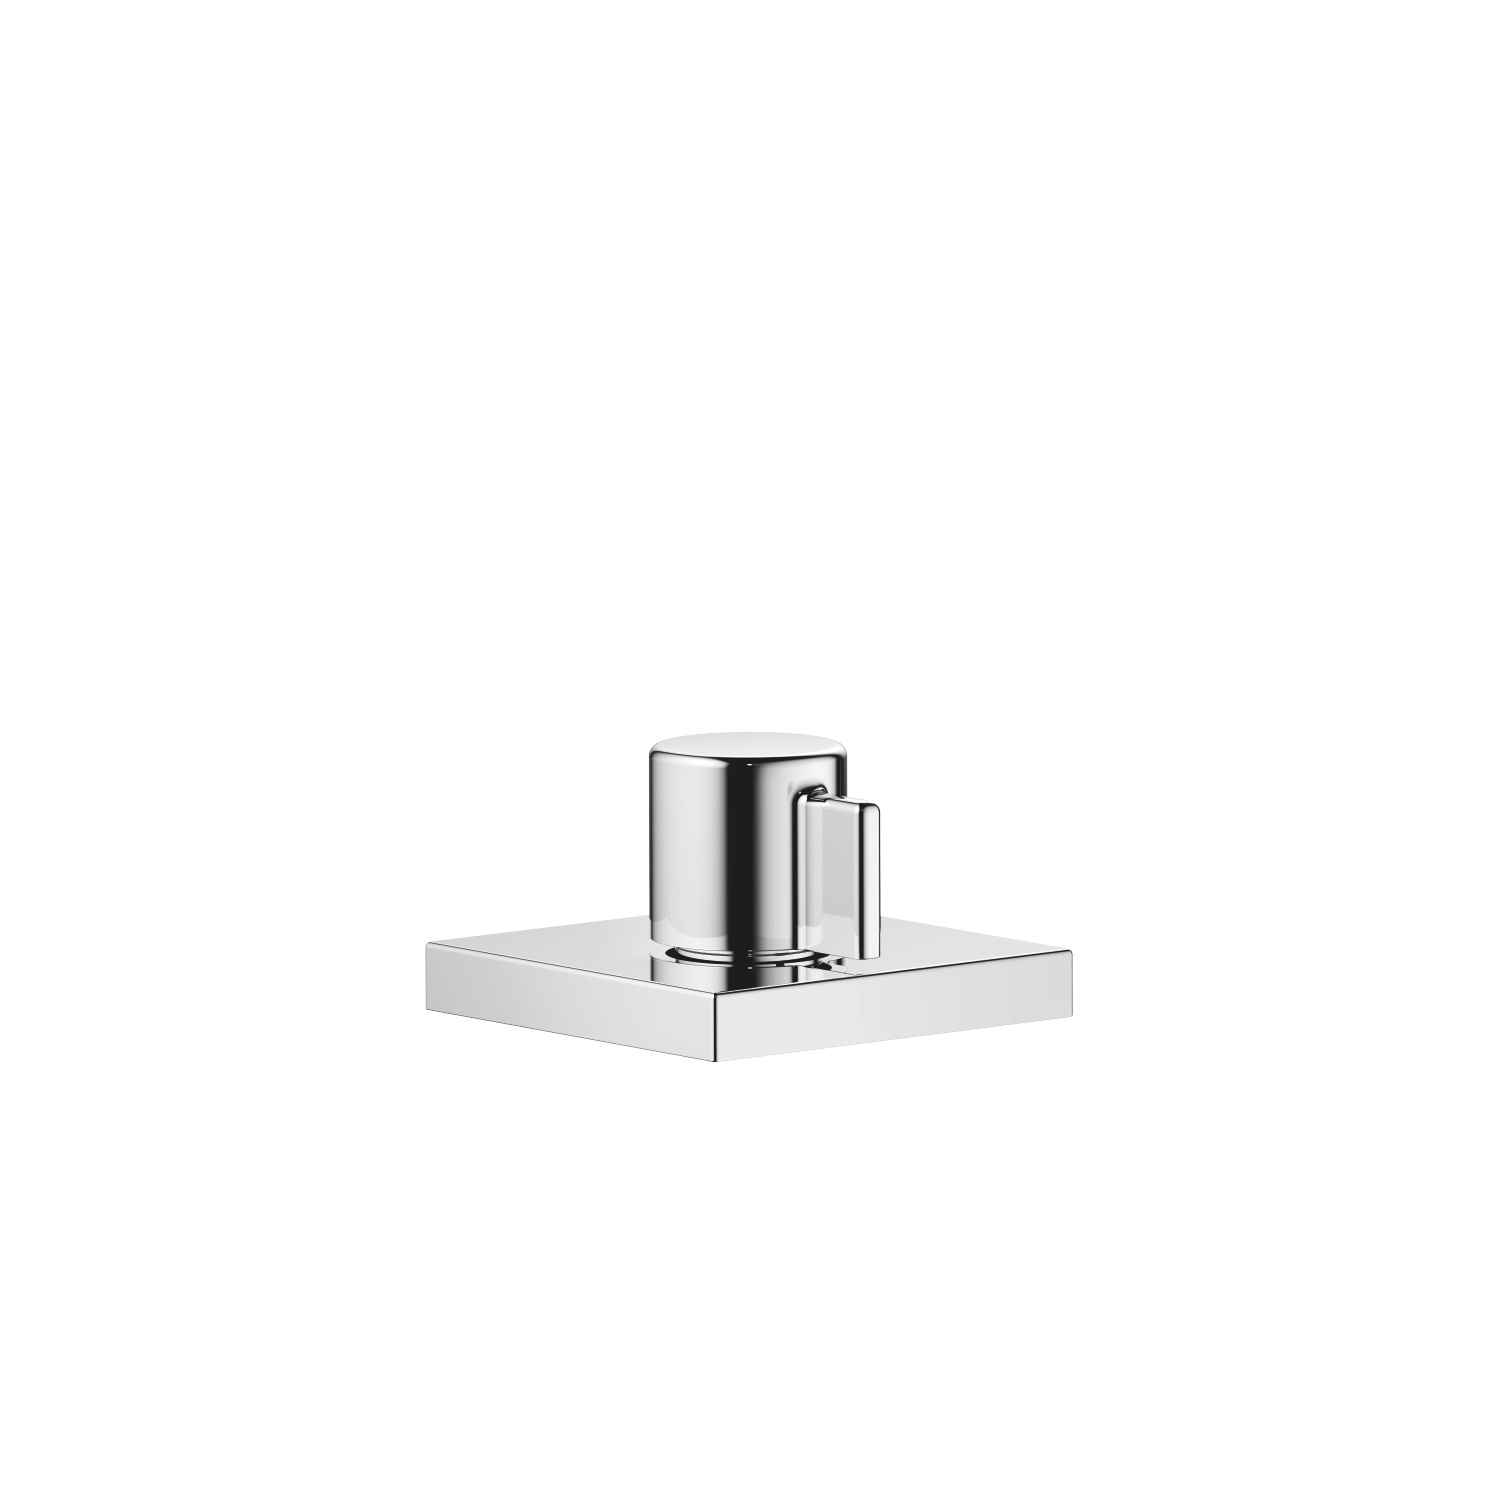 Two-way diverter - polished chrome